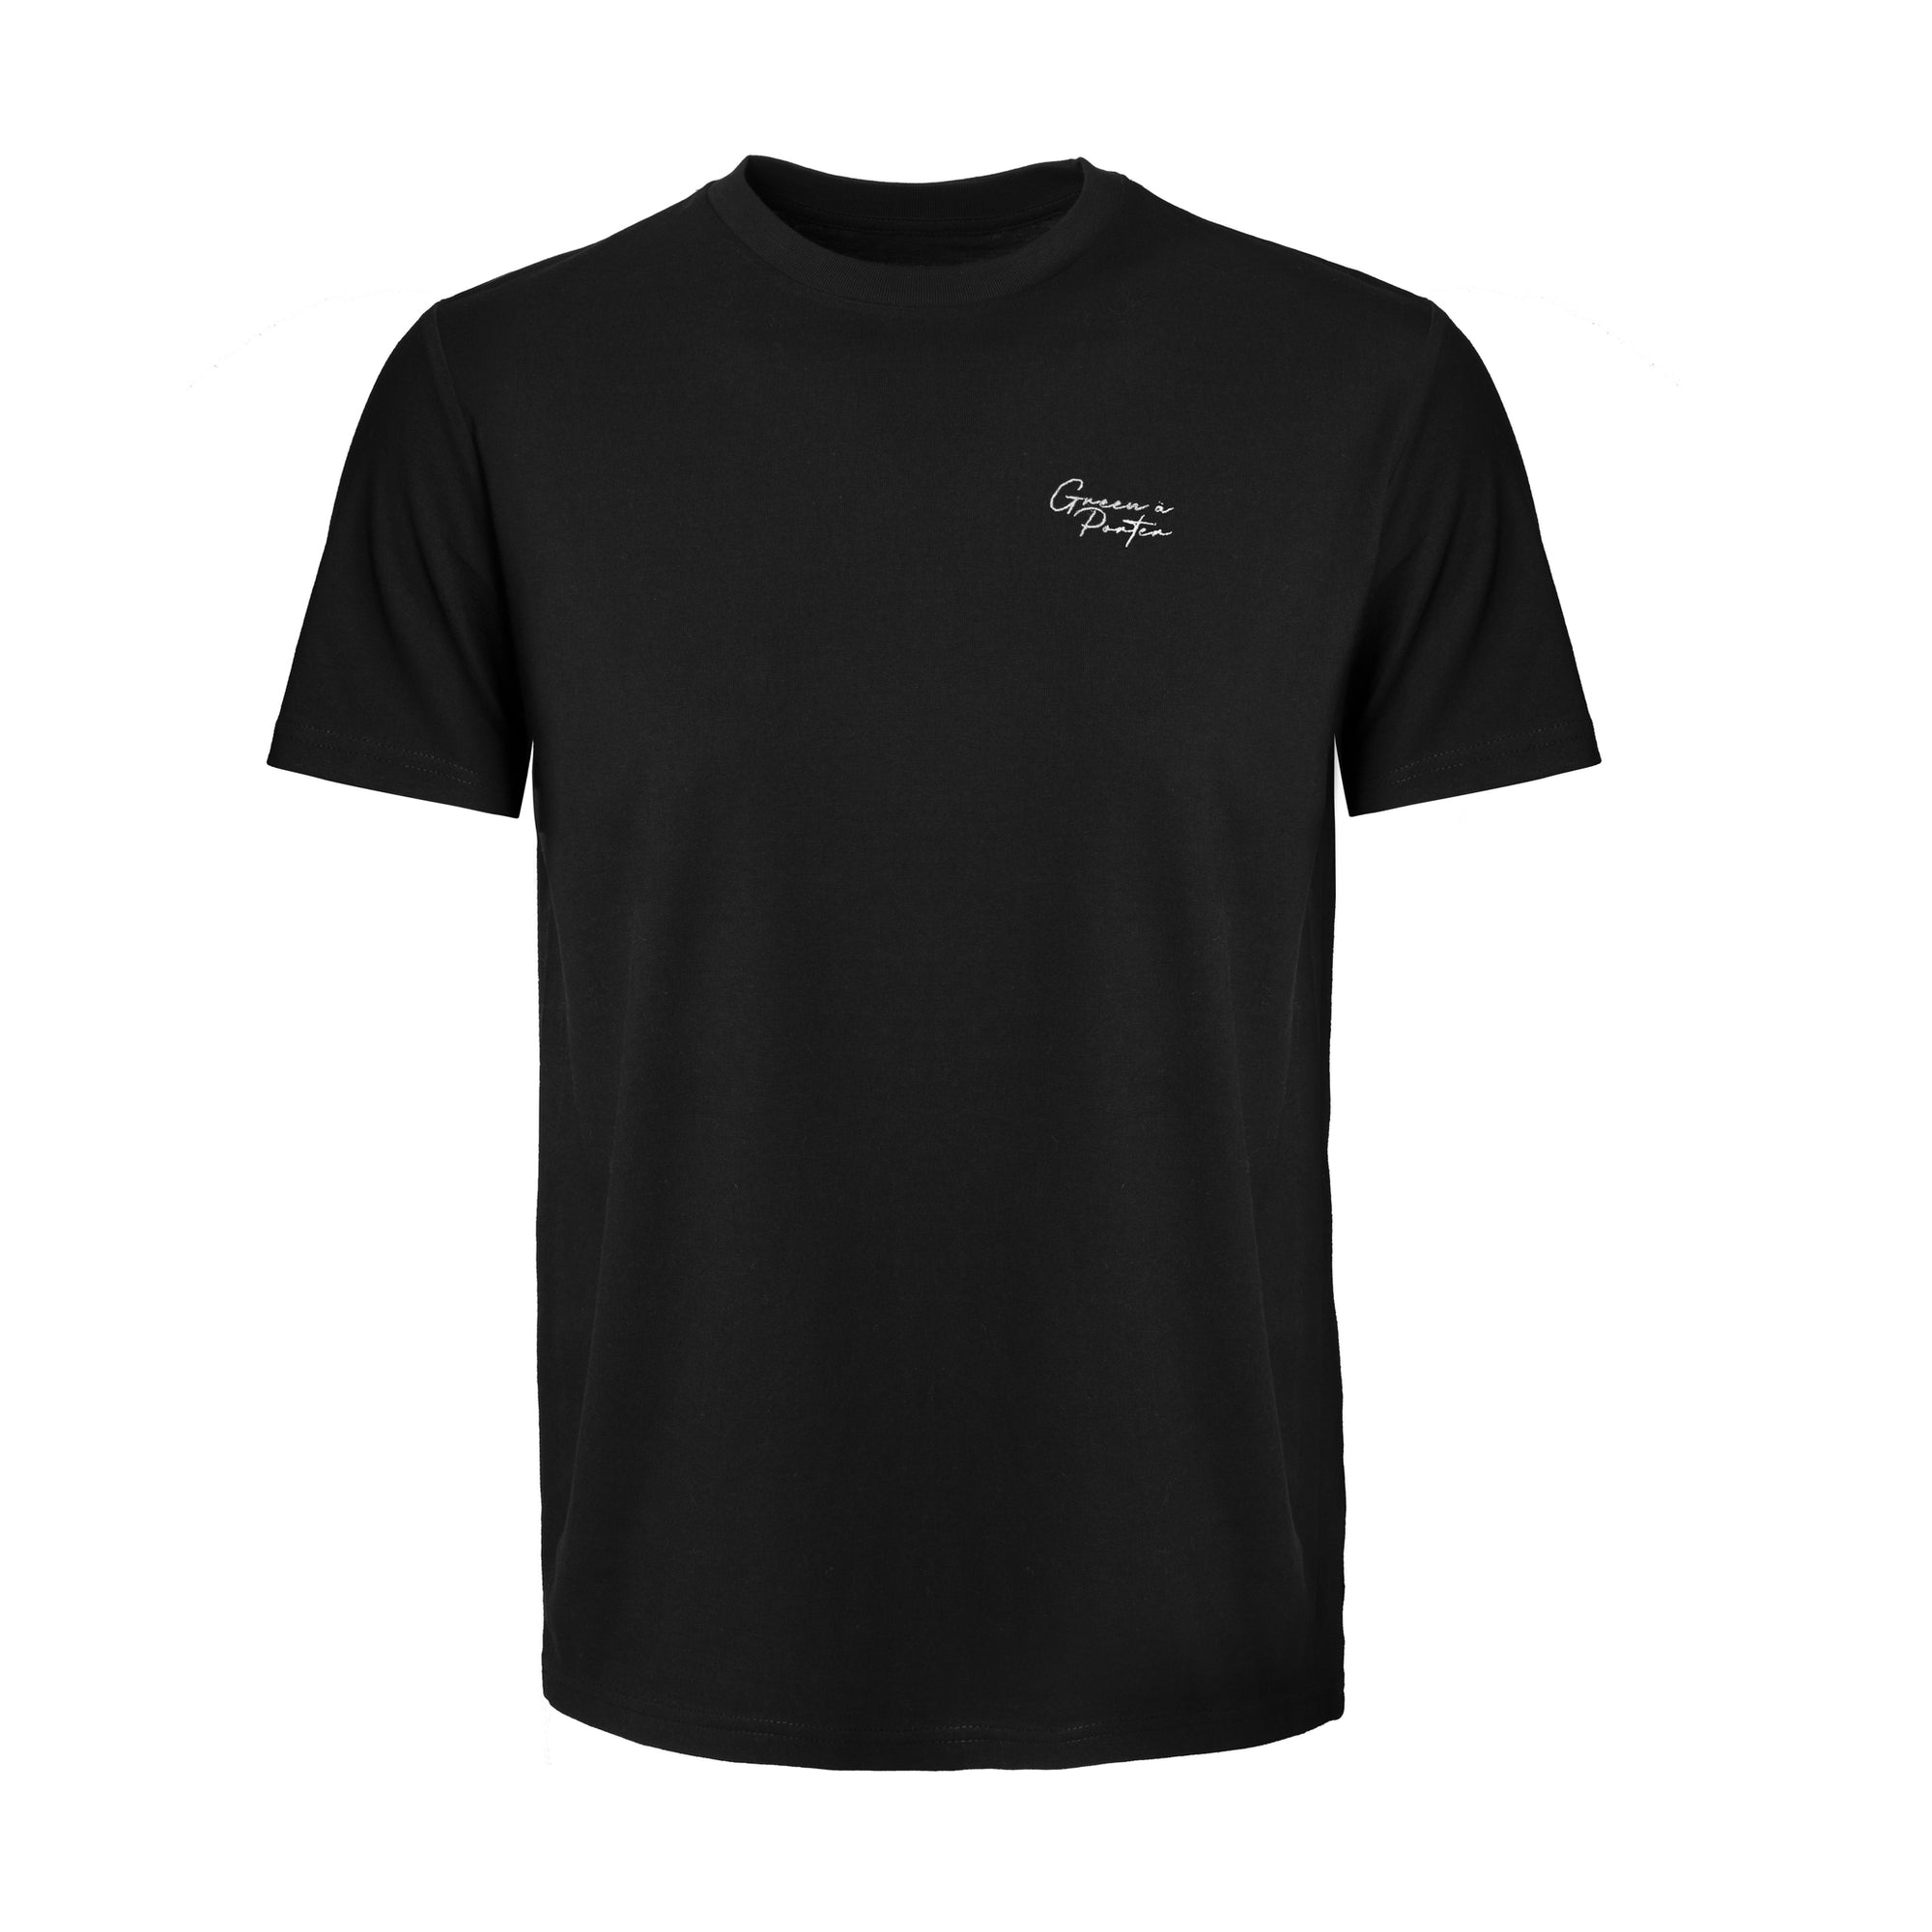 Sustainable Black Cotton T-Shirt - Cotton T-Shirts | GreenaPorter